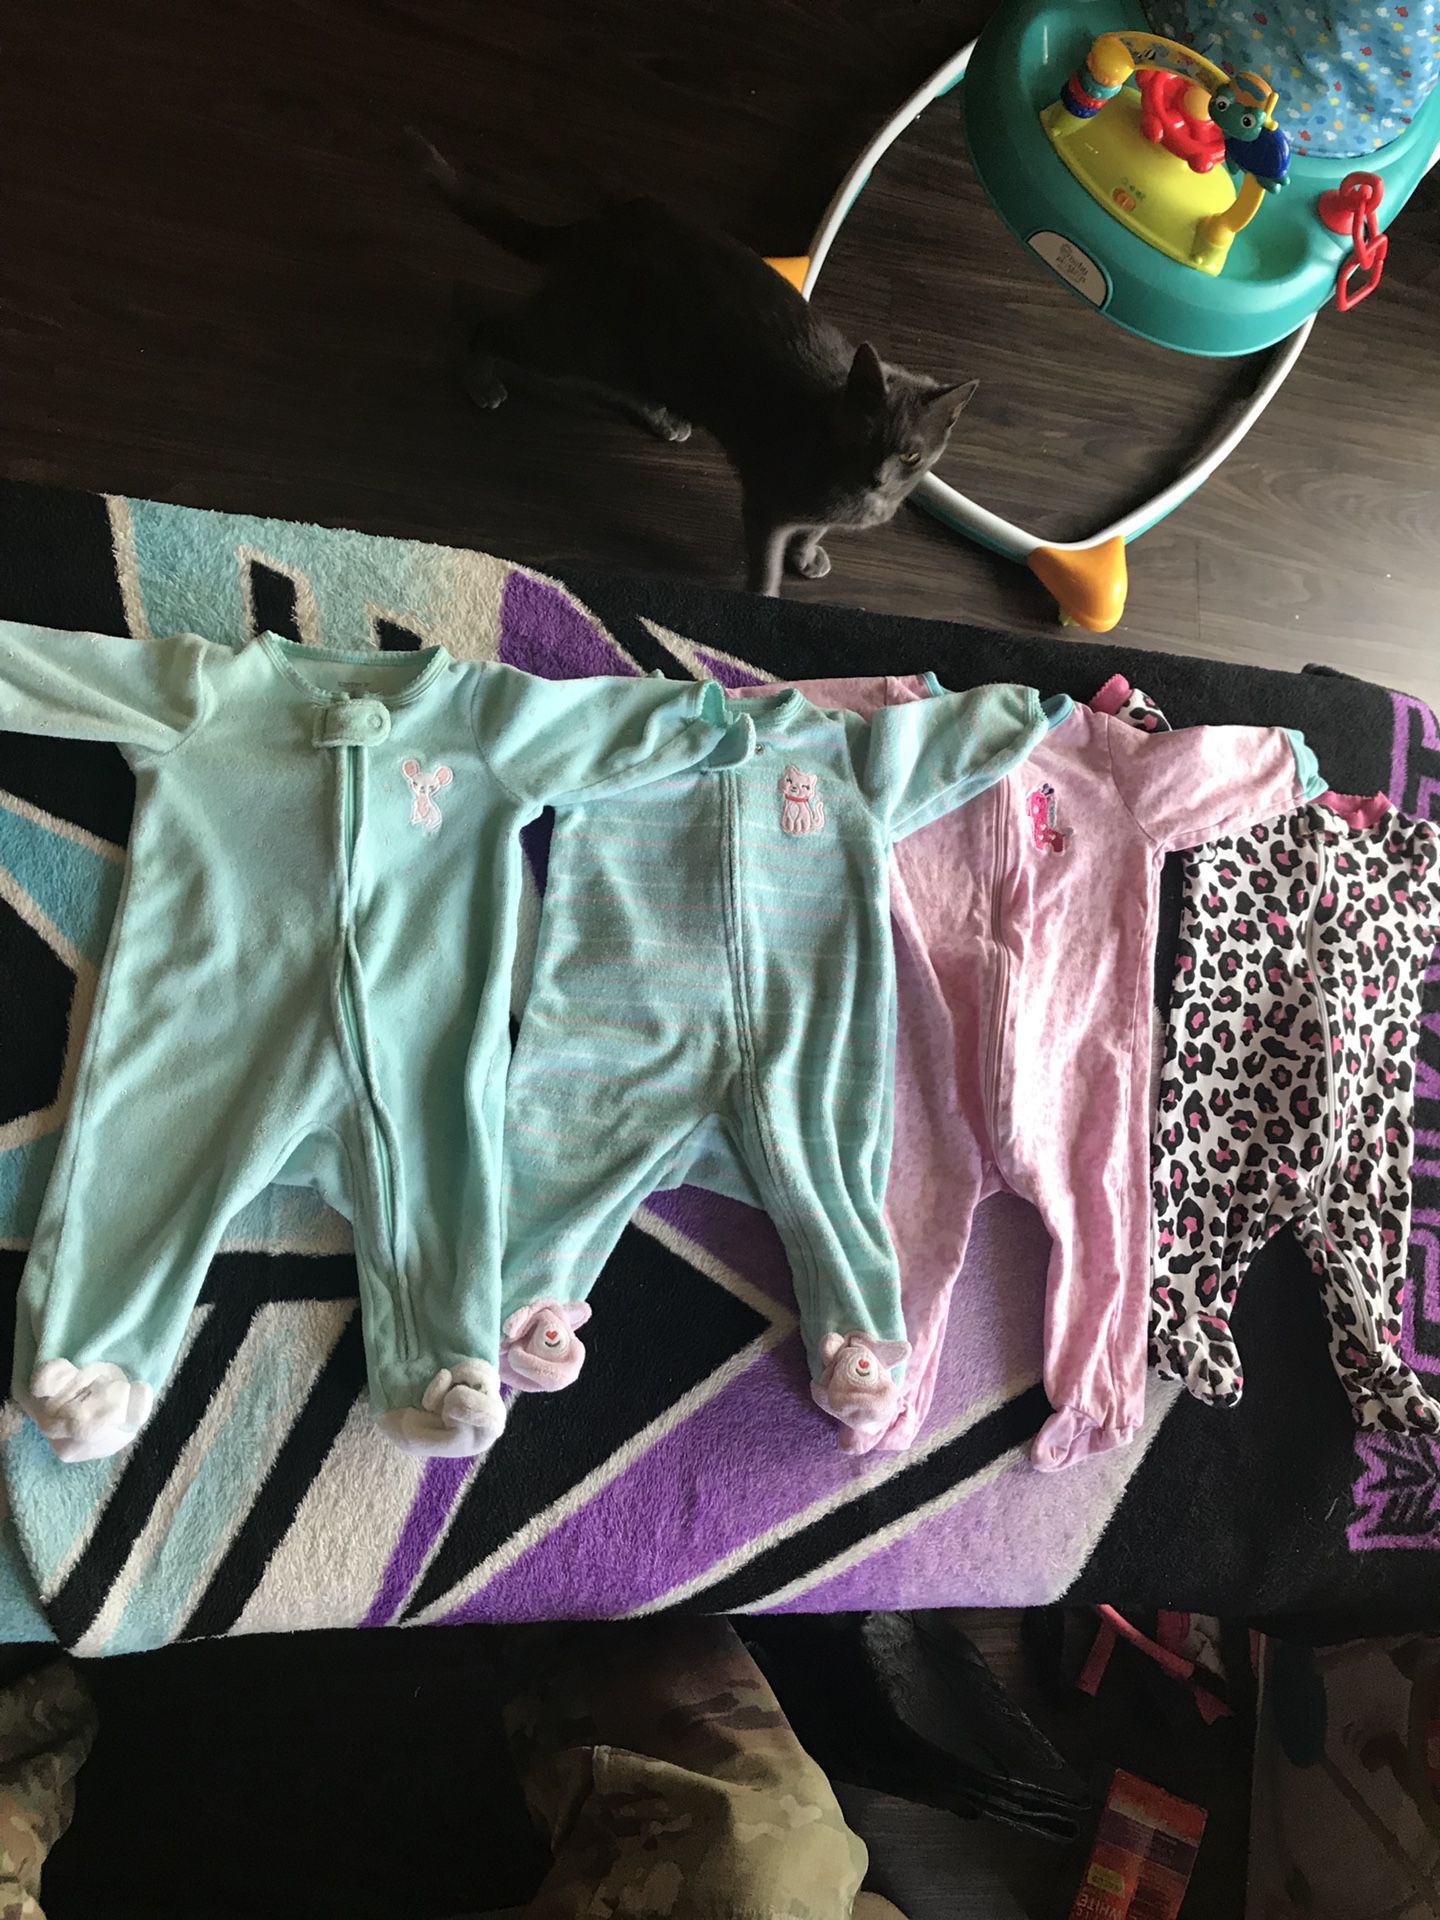 0-3 months baby clothes ;